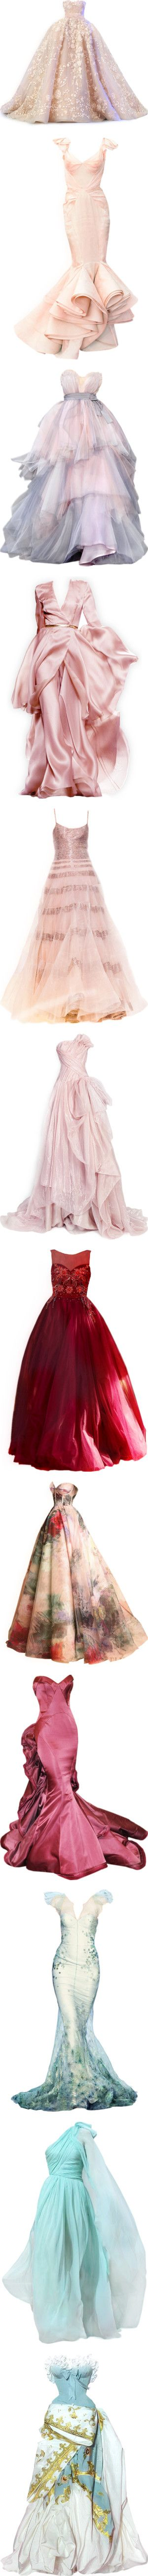 Dream gowns by satinee on Polyvore featuring dresses, gowns, vestidos, long dress, pink ball gown, long pink dress, pink dress, elie saab evening dresses, elie saab dresses and long dresses, designer, high fashion, style, couture, ballgown